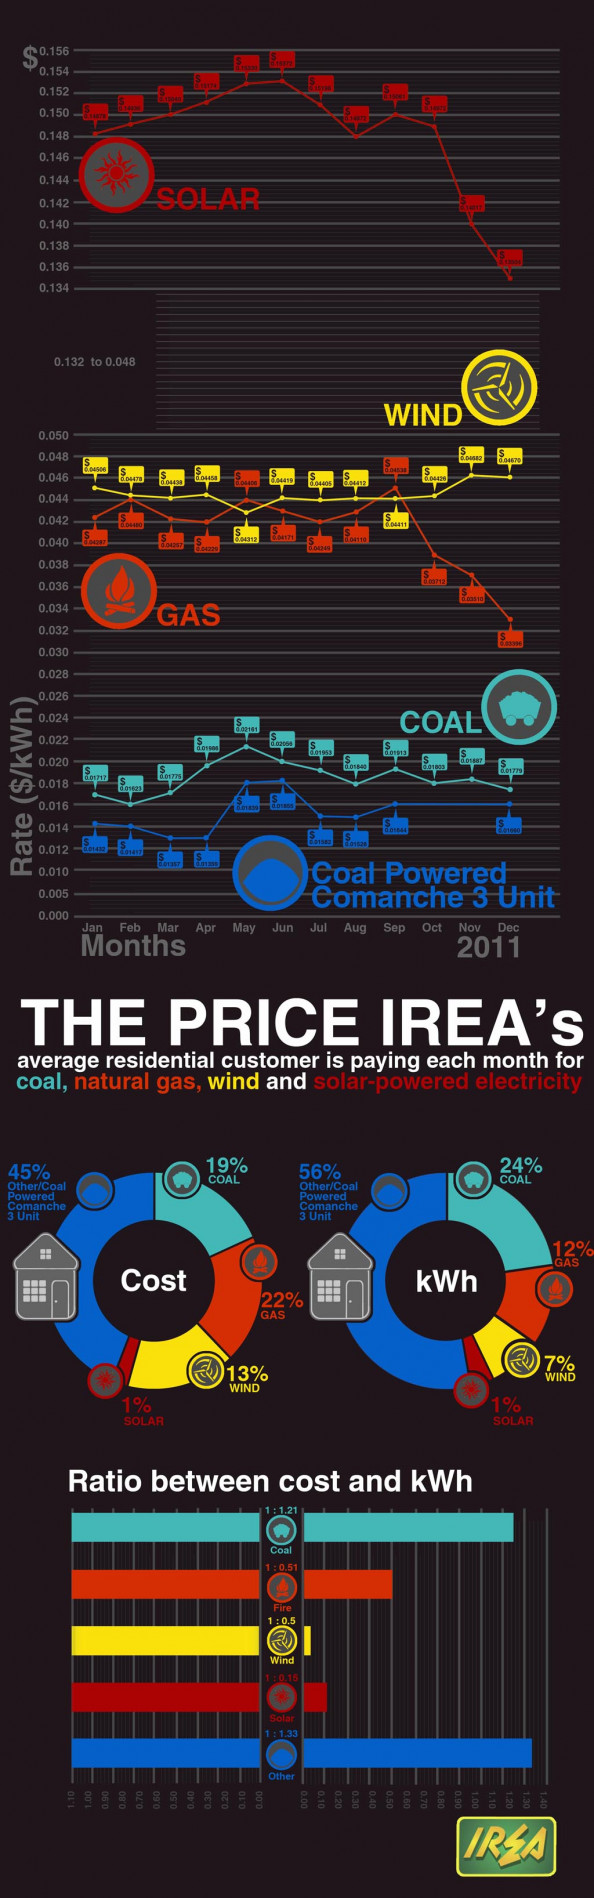 Energy Rates 2011 Infographic